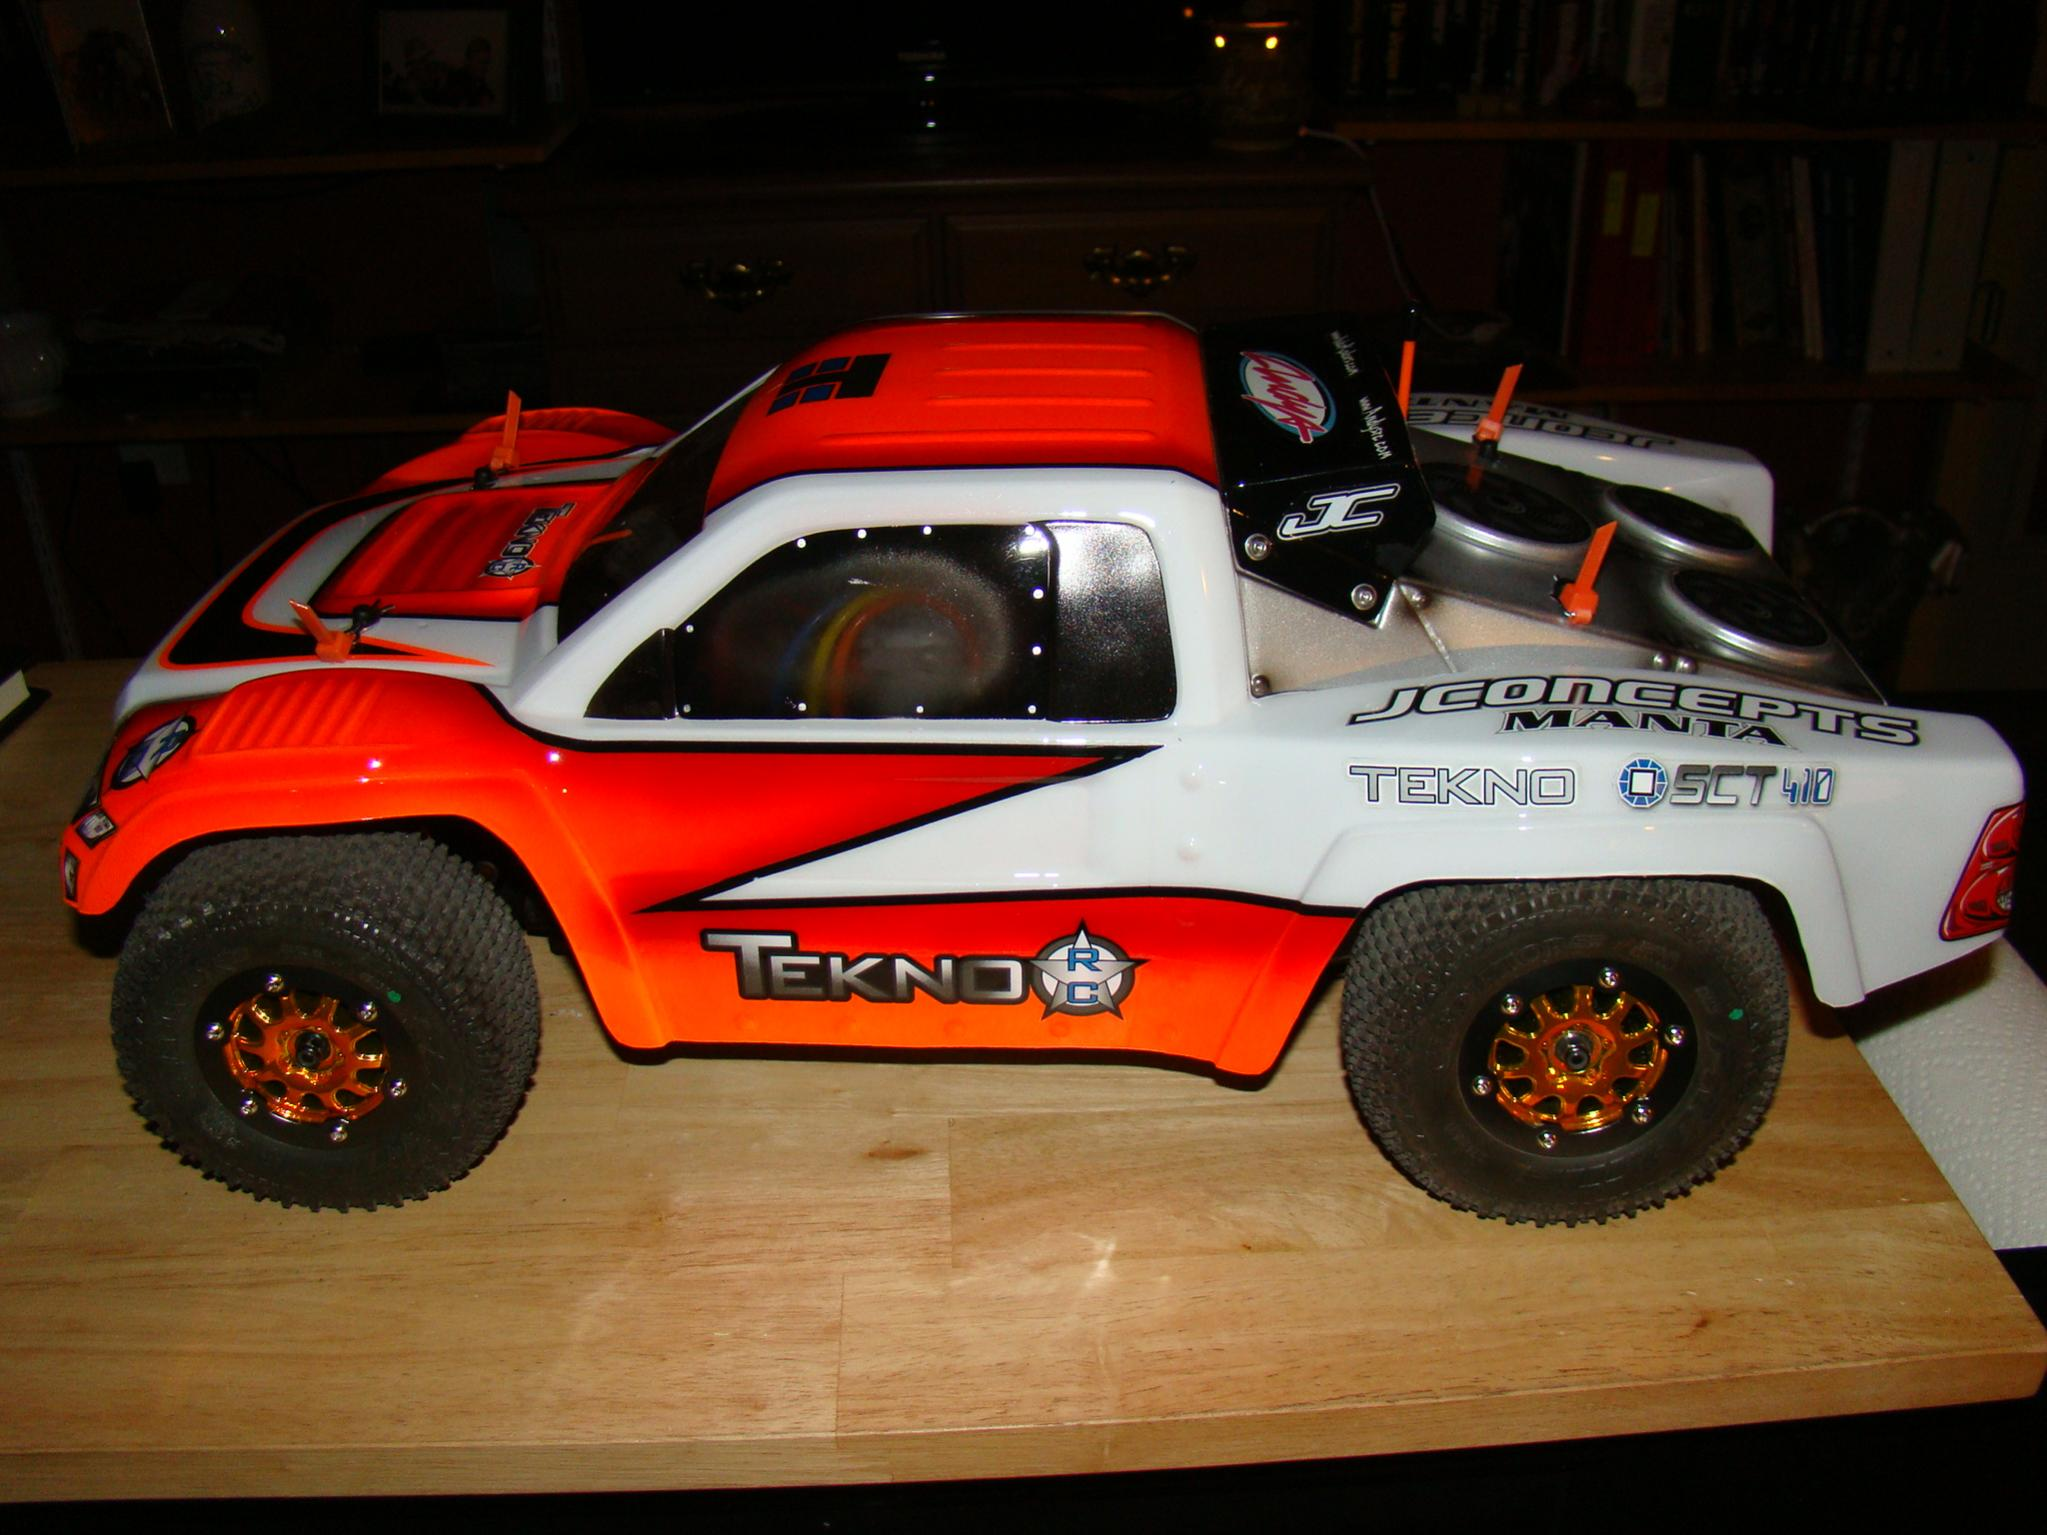 Tekno SCT410 Thread - Page 402 - R/C Tech Forums